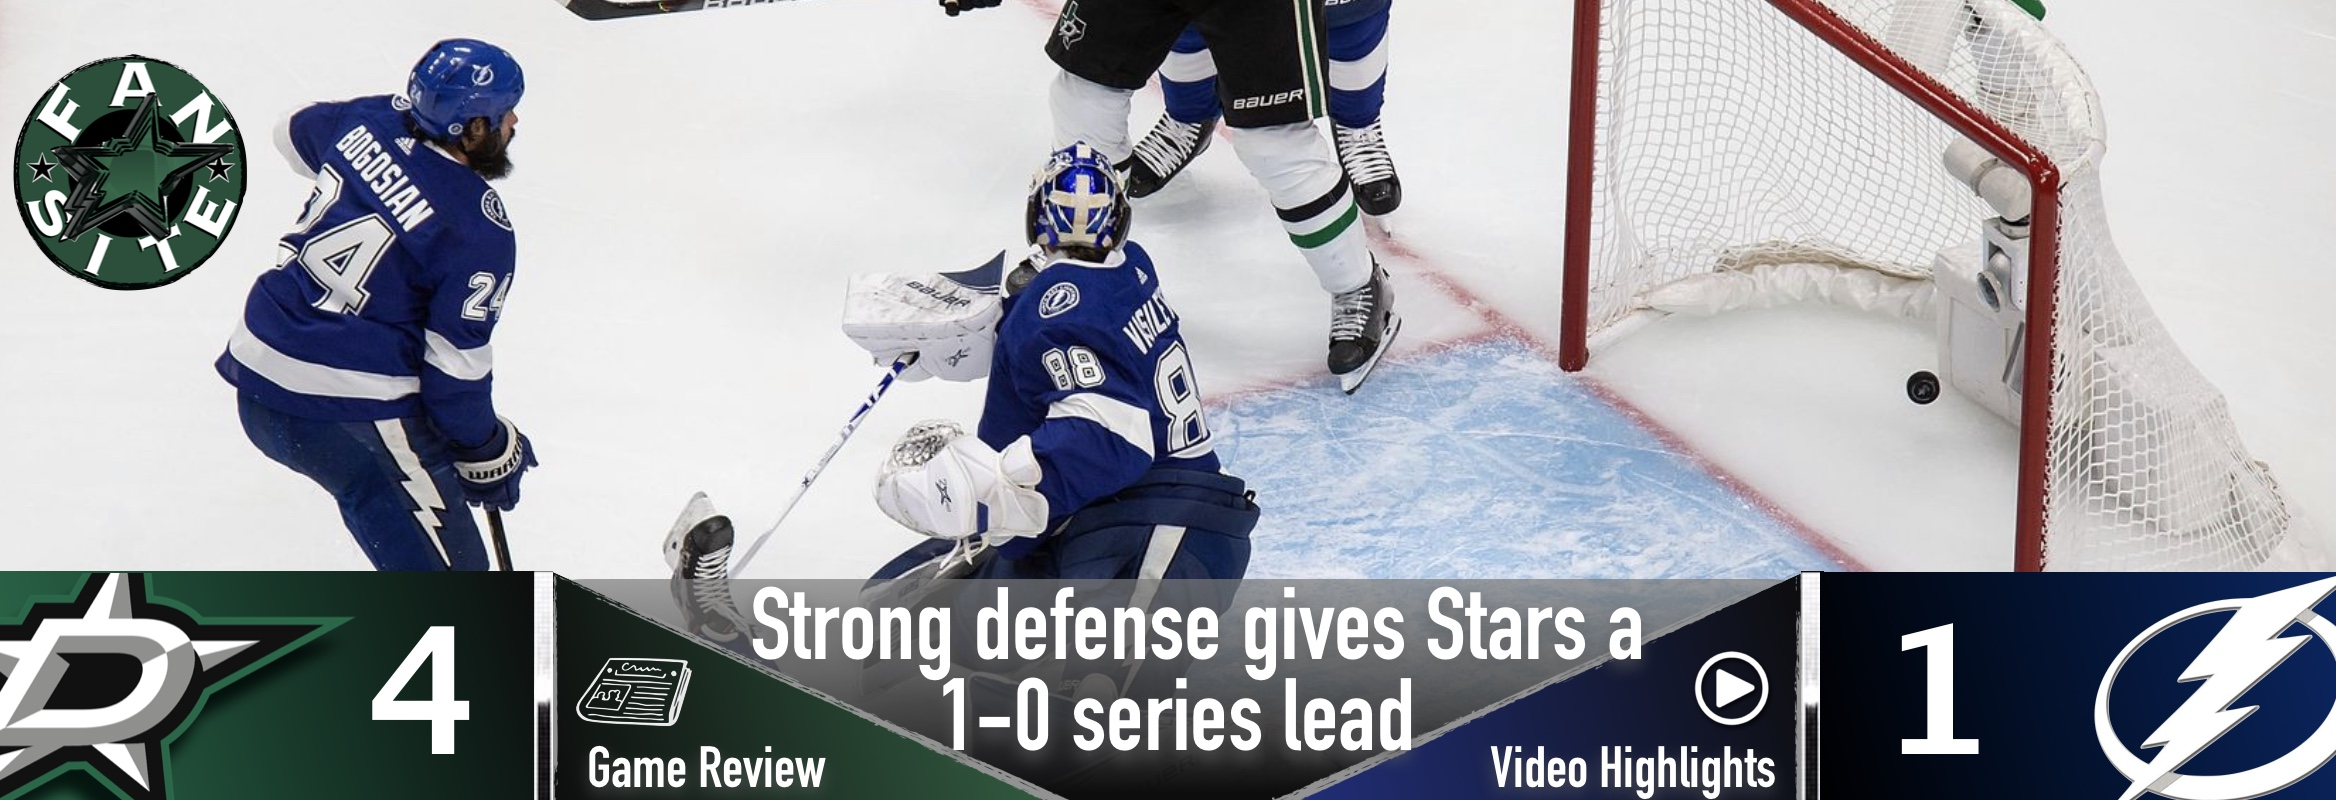 Strong defense gives Stars a 1-0 series lead